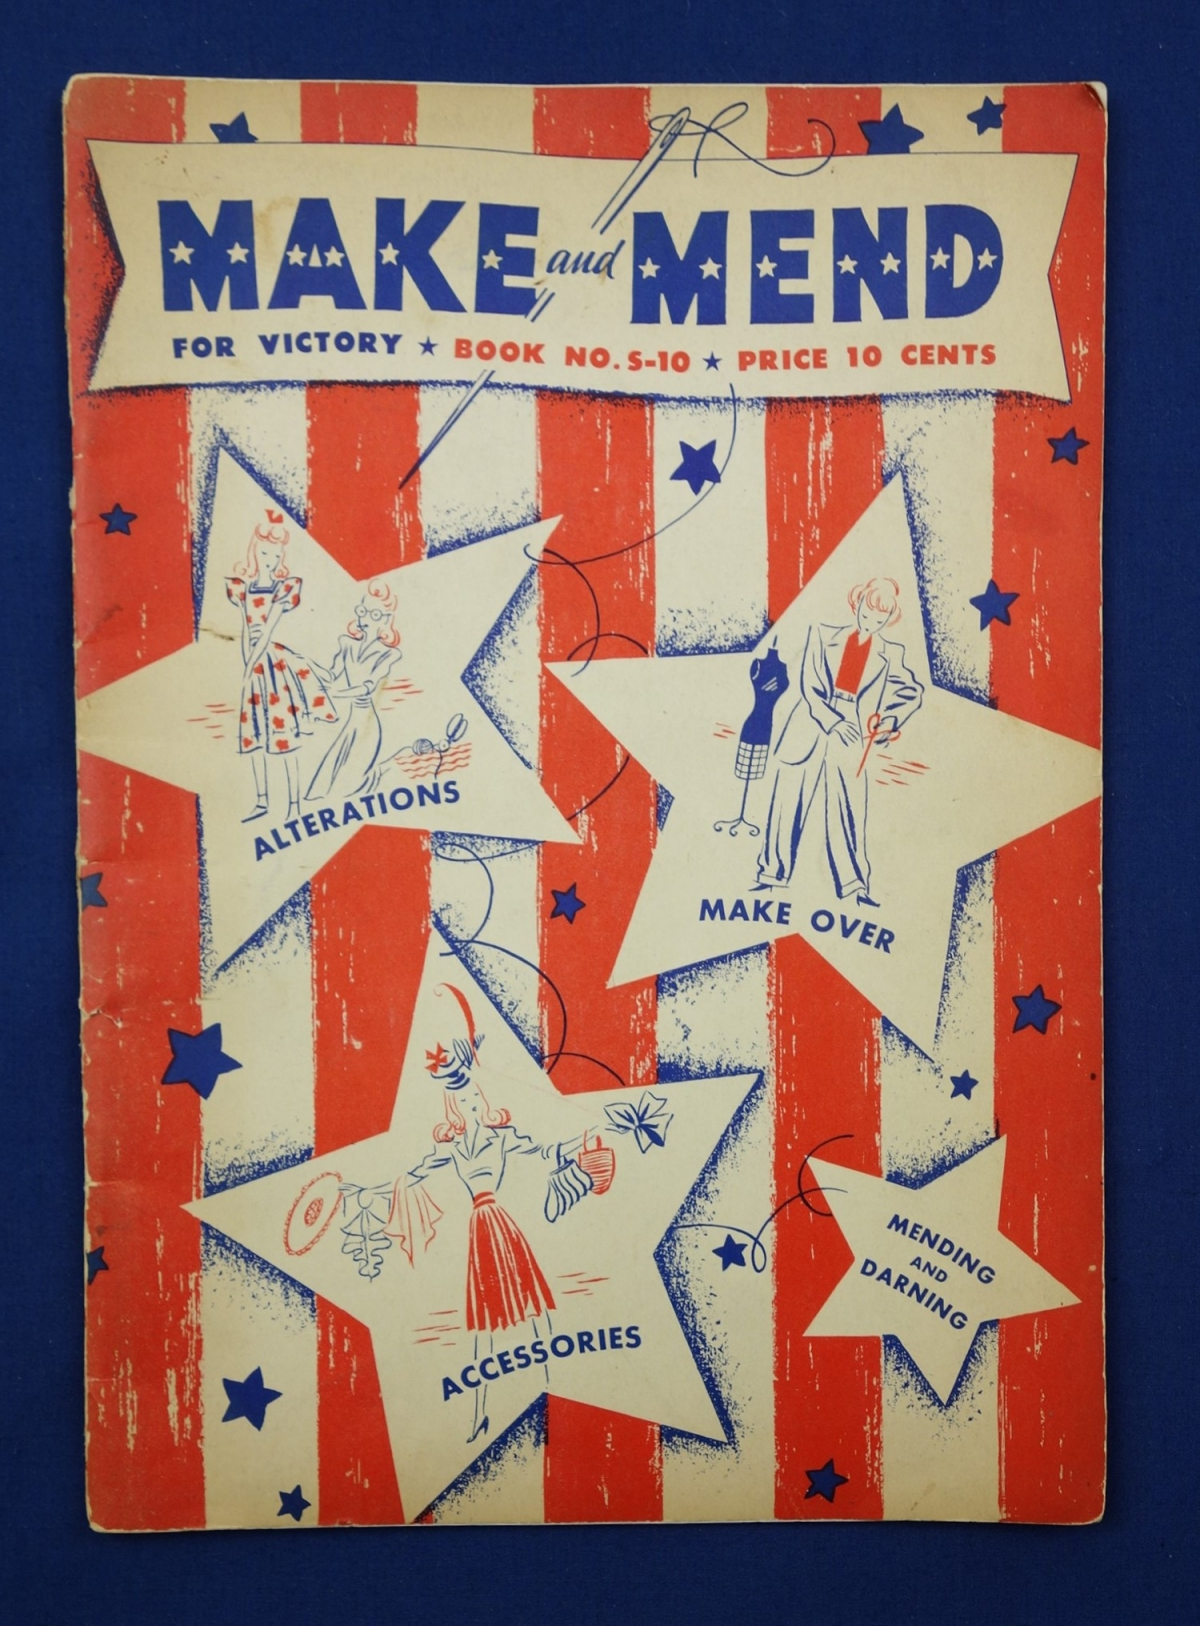 "Booklet entitled ""Make and Mend for Victory"". It contains information about sewing, mending, alterations, re-modeling, accessories and so forth. USA, 1942 (TRC 2017.4030)."